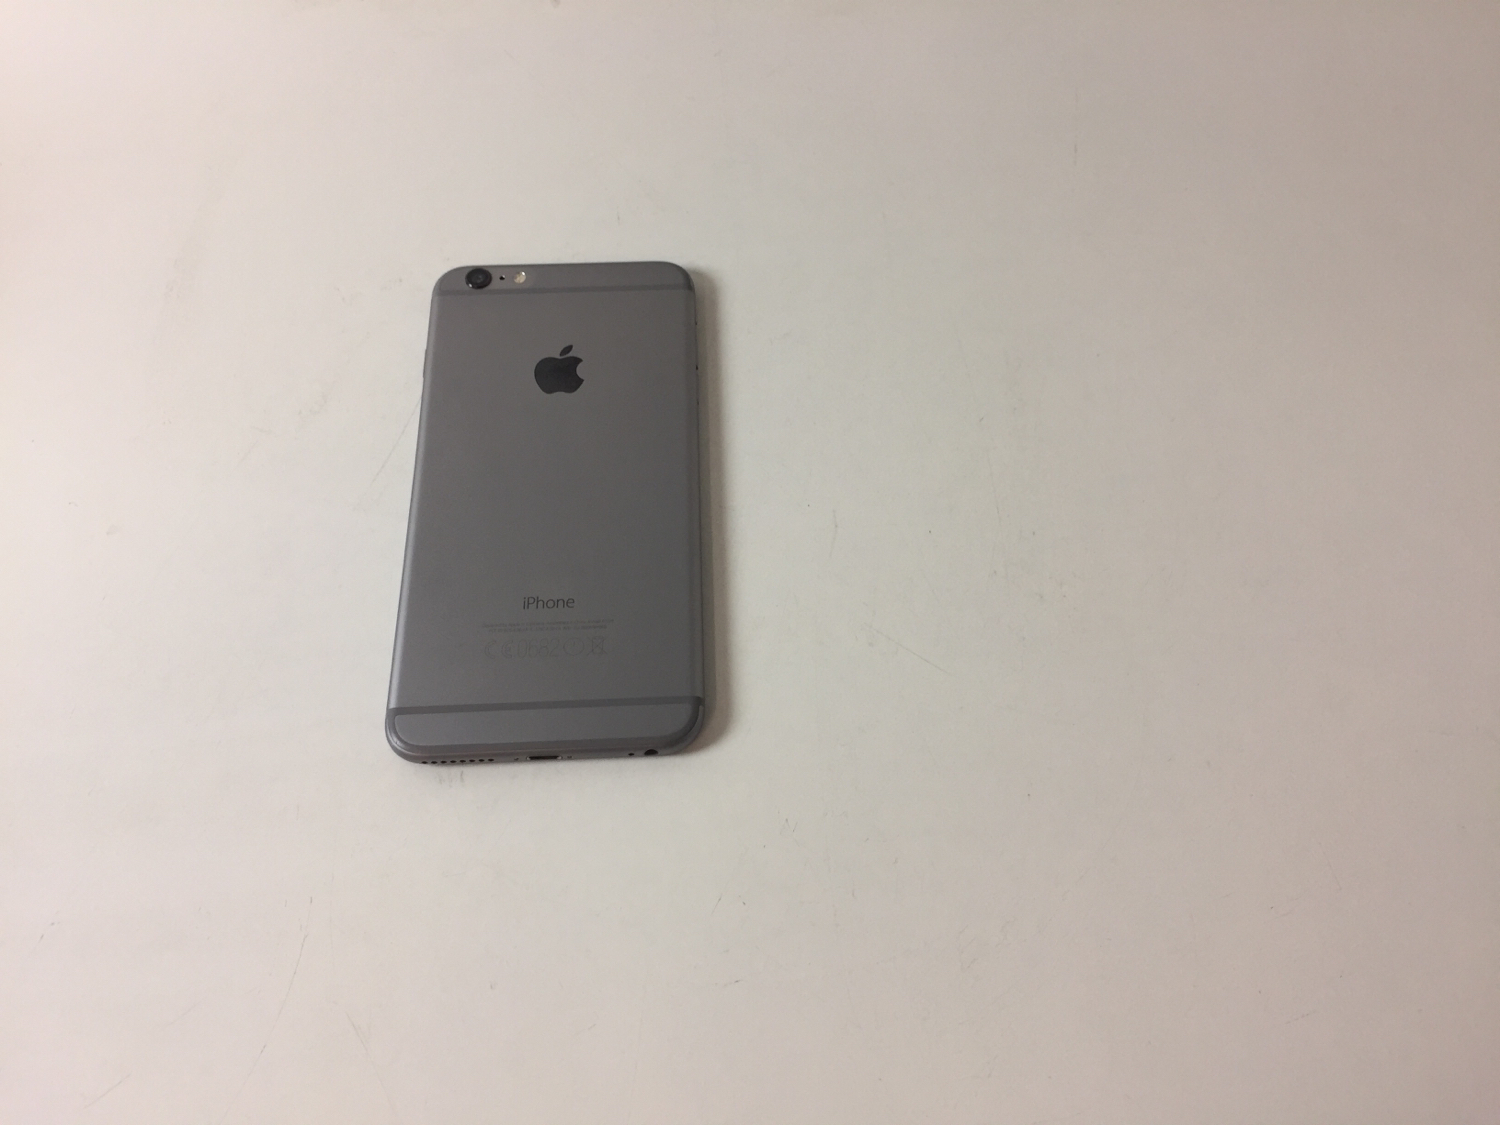 iPhone 6 Plus 16GB, 16GB, Space Gray, Kuva 2